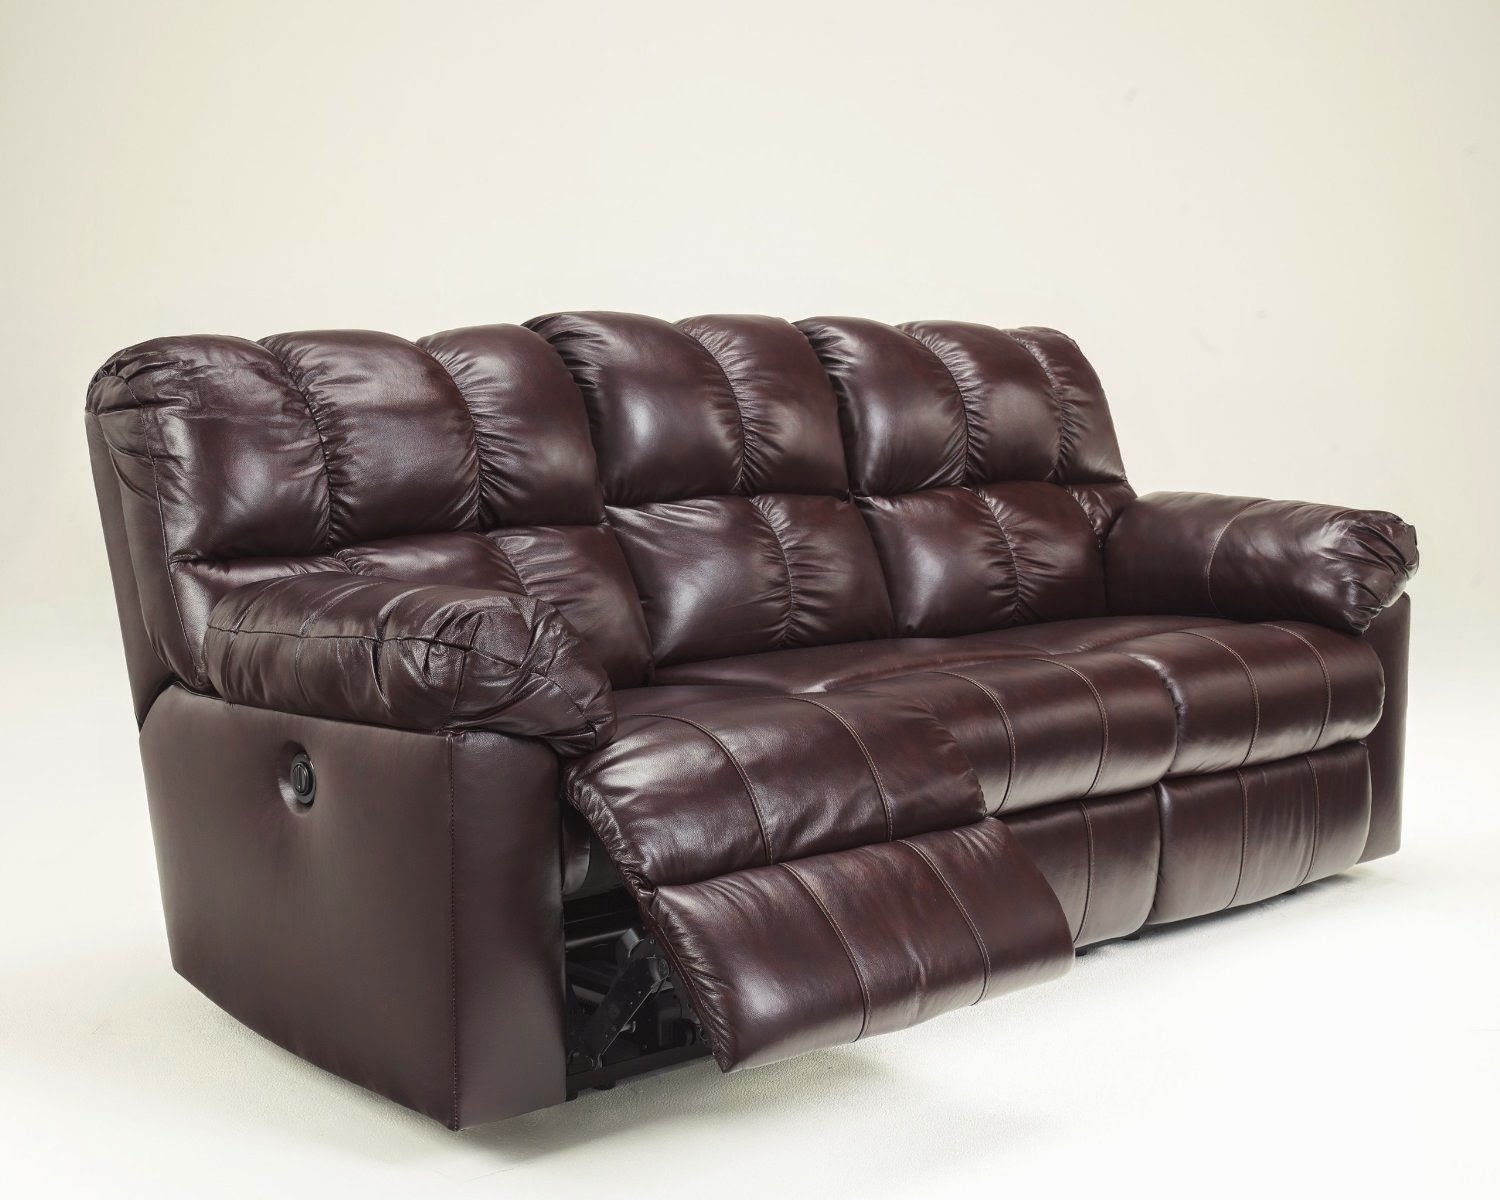 reclining sofa leather sleeper sectional loveseat sofas for sale cheap red